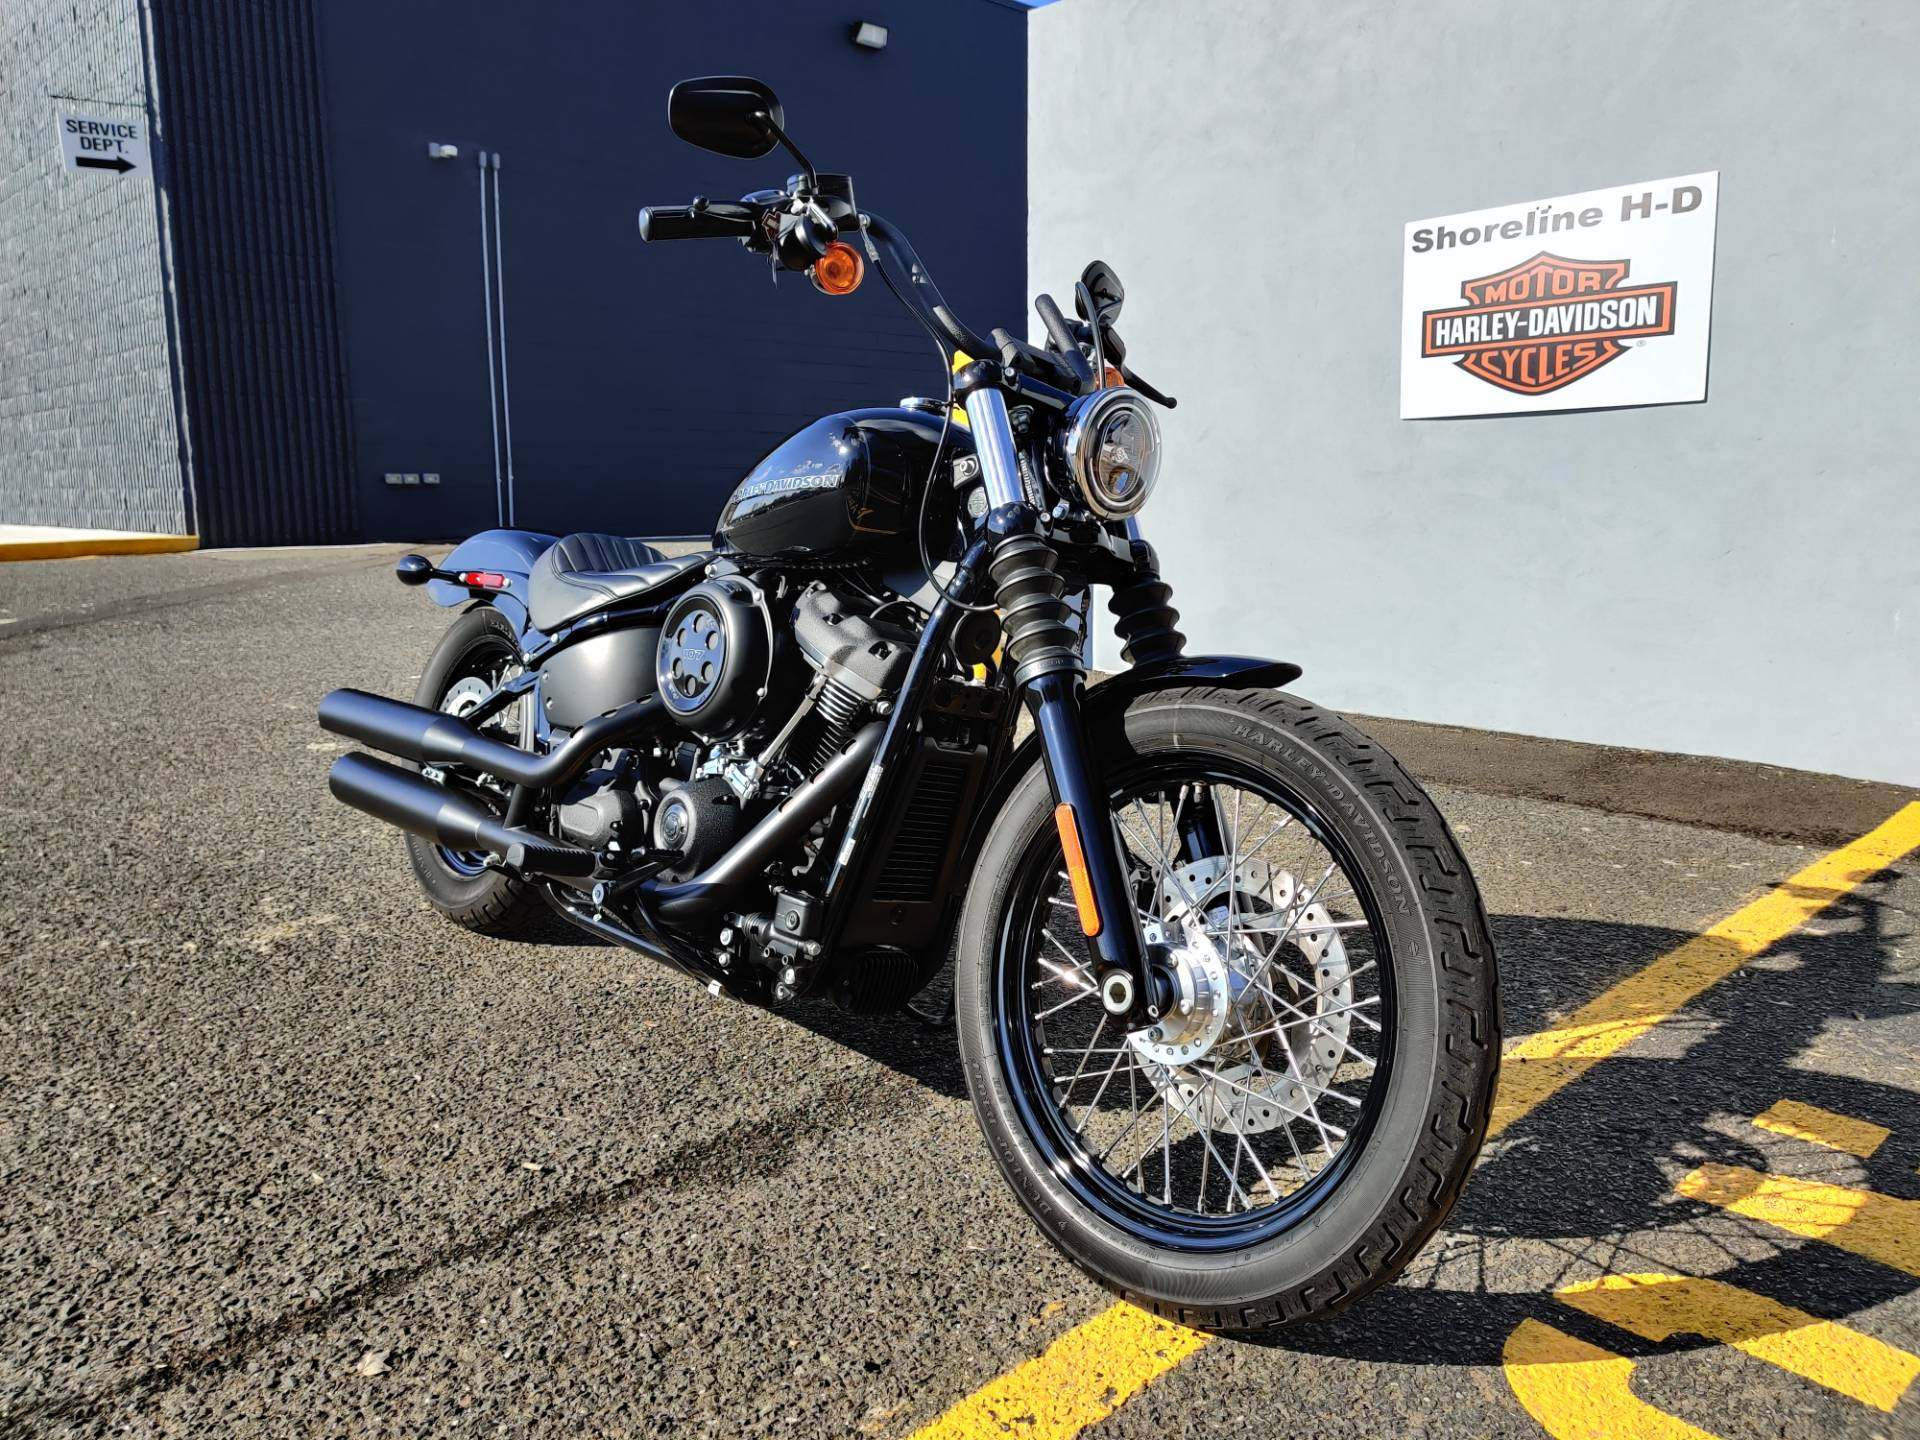 2019 Harley-Davidson Street Bob in West Long Branch, New Jersey - Photo 3